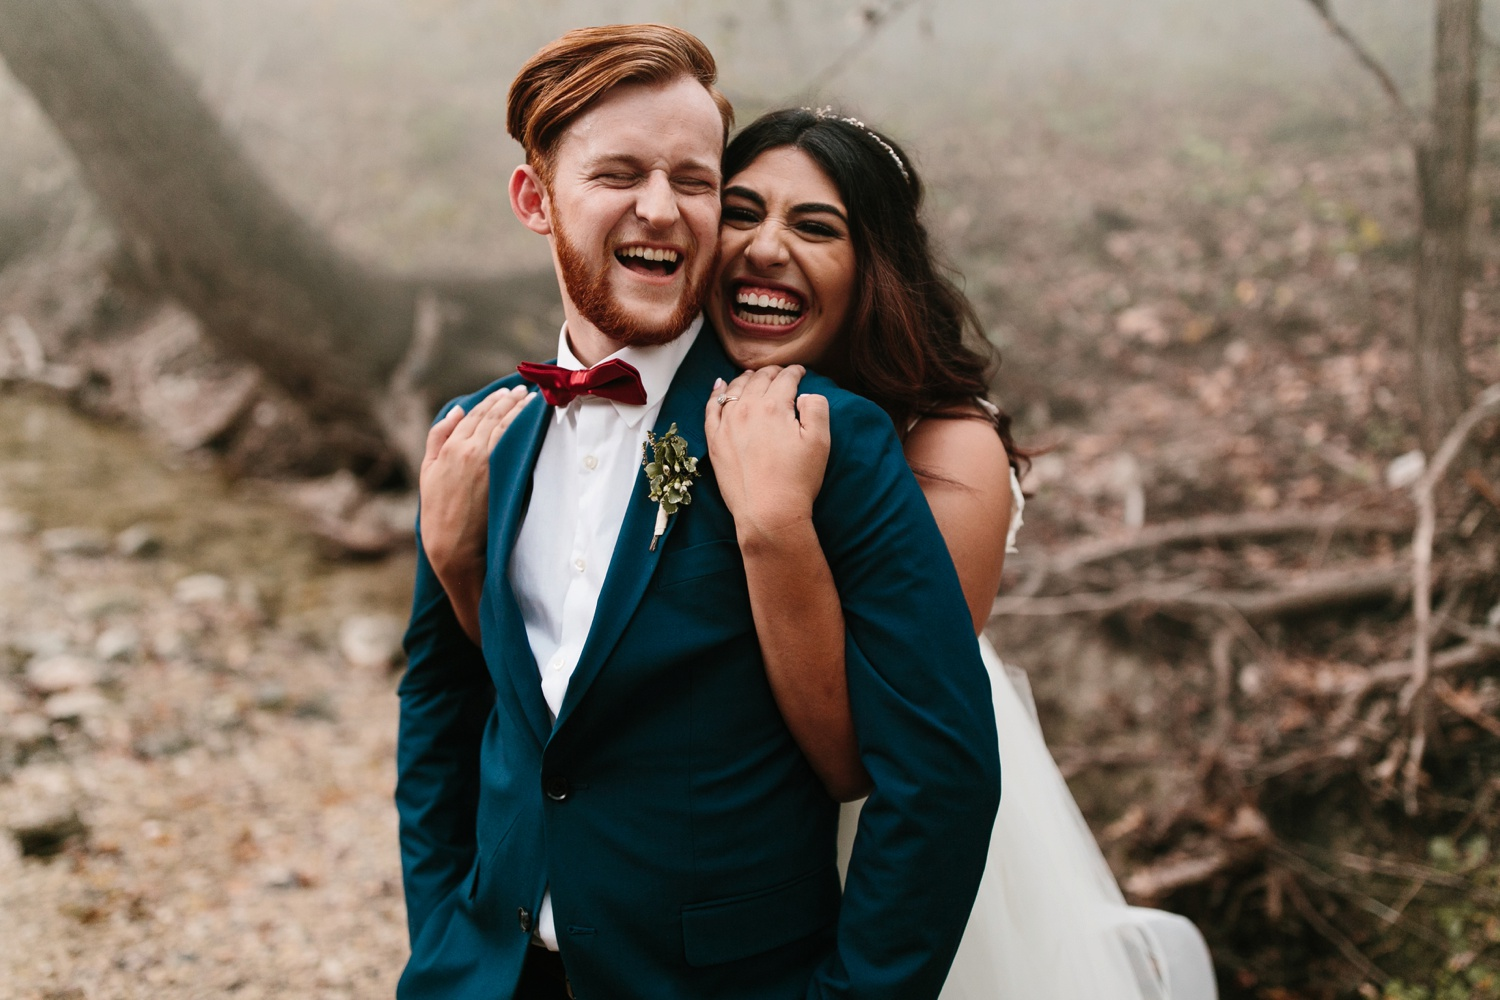 Grant + Lysette | a vibrant, deep burgundy and navy, and mixed metals wedding at Hidden Pines Chapel by North Texas Wedding Photographer Rachel Meagan Photography 258